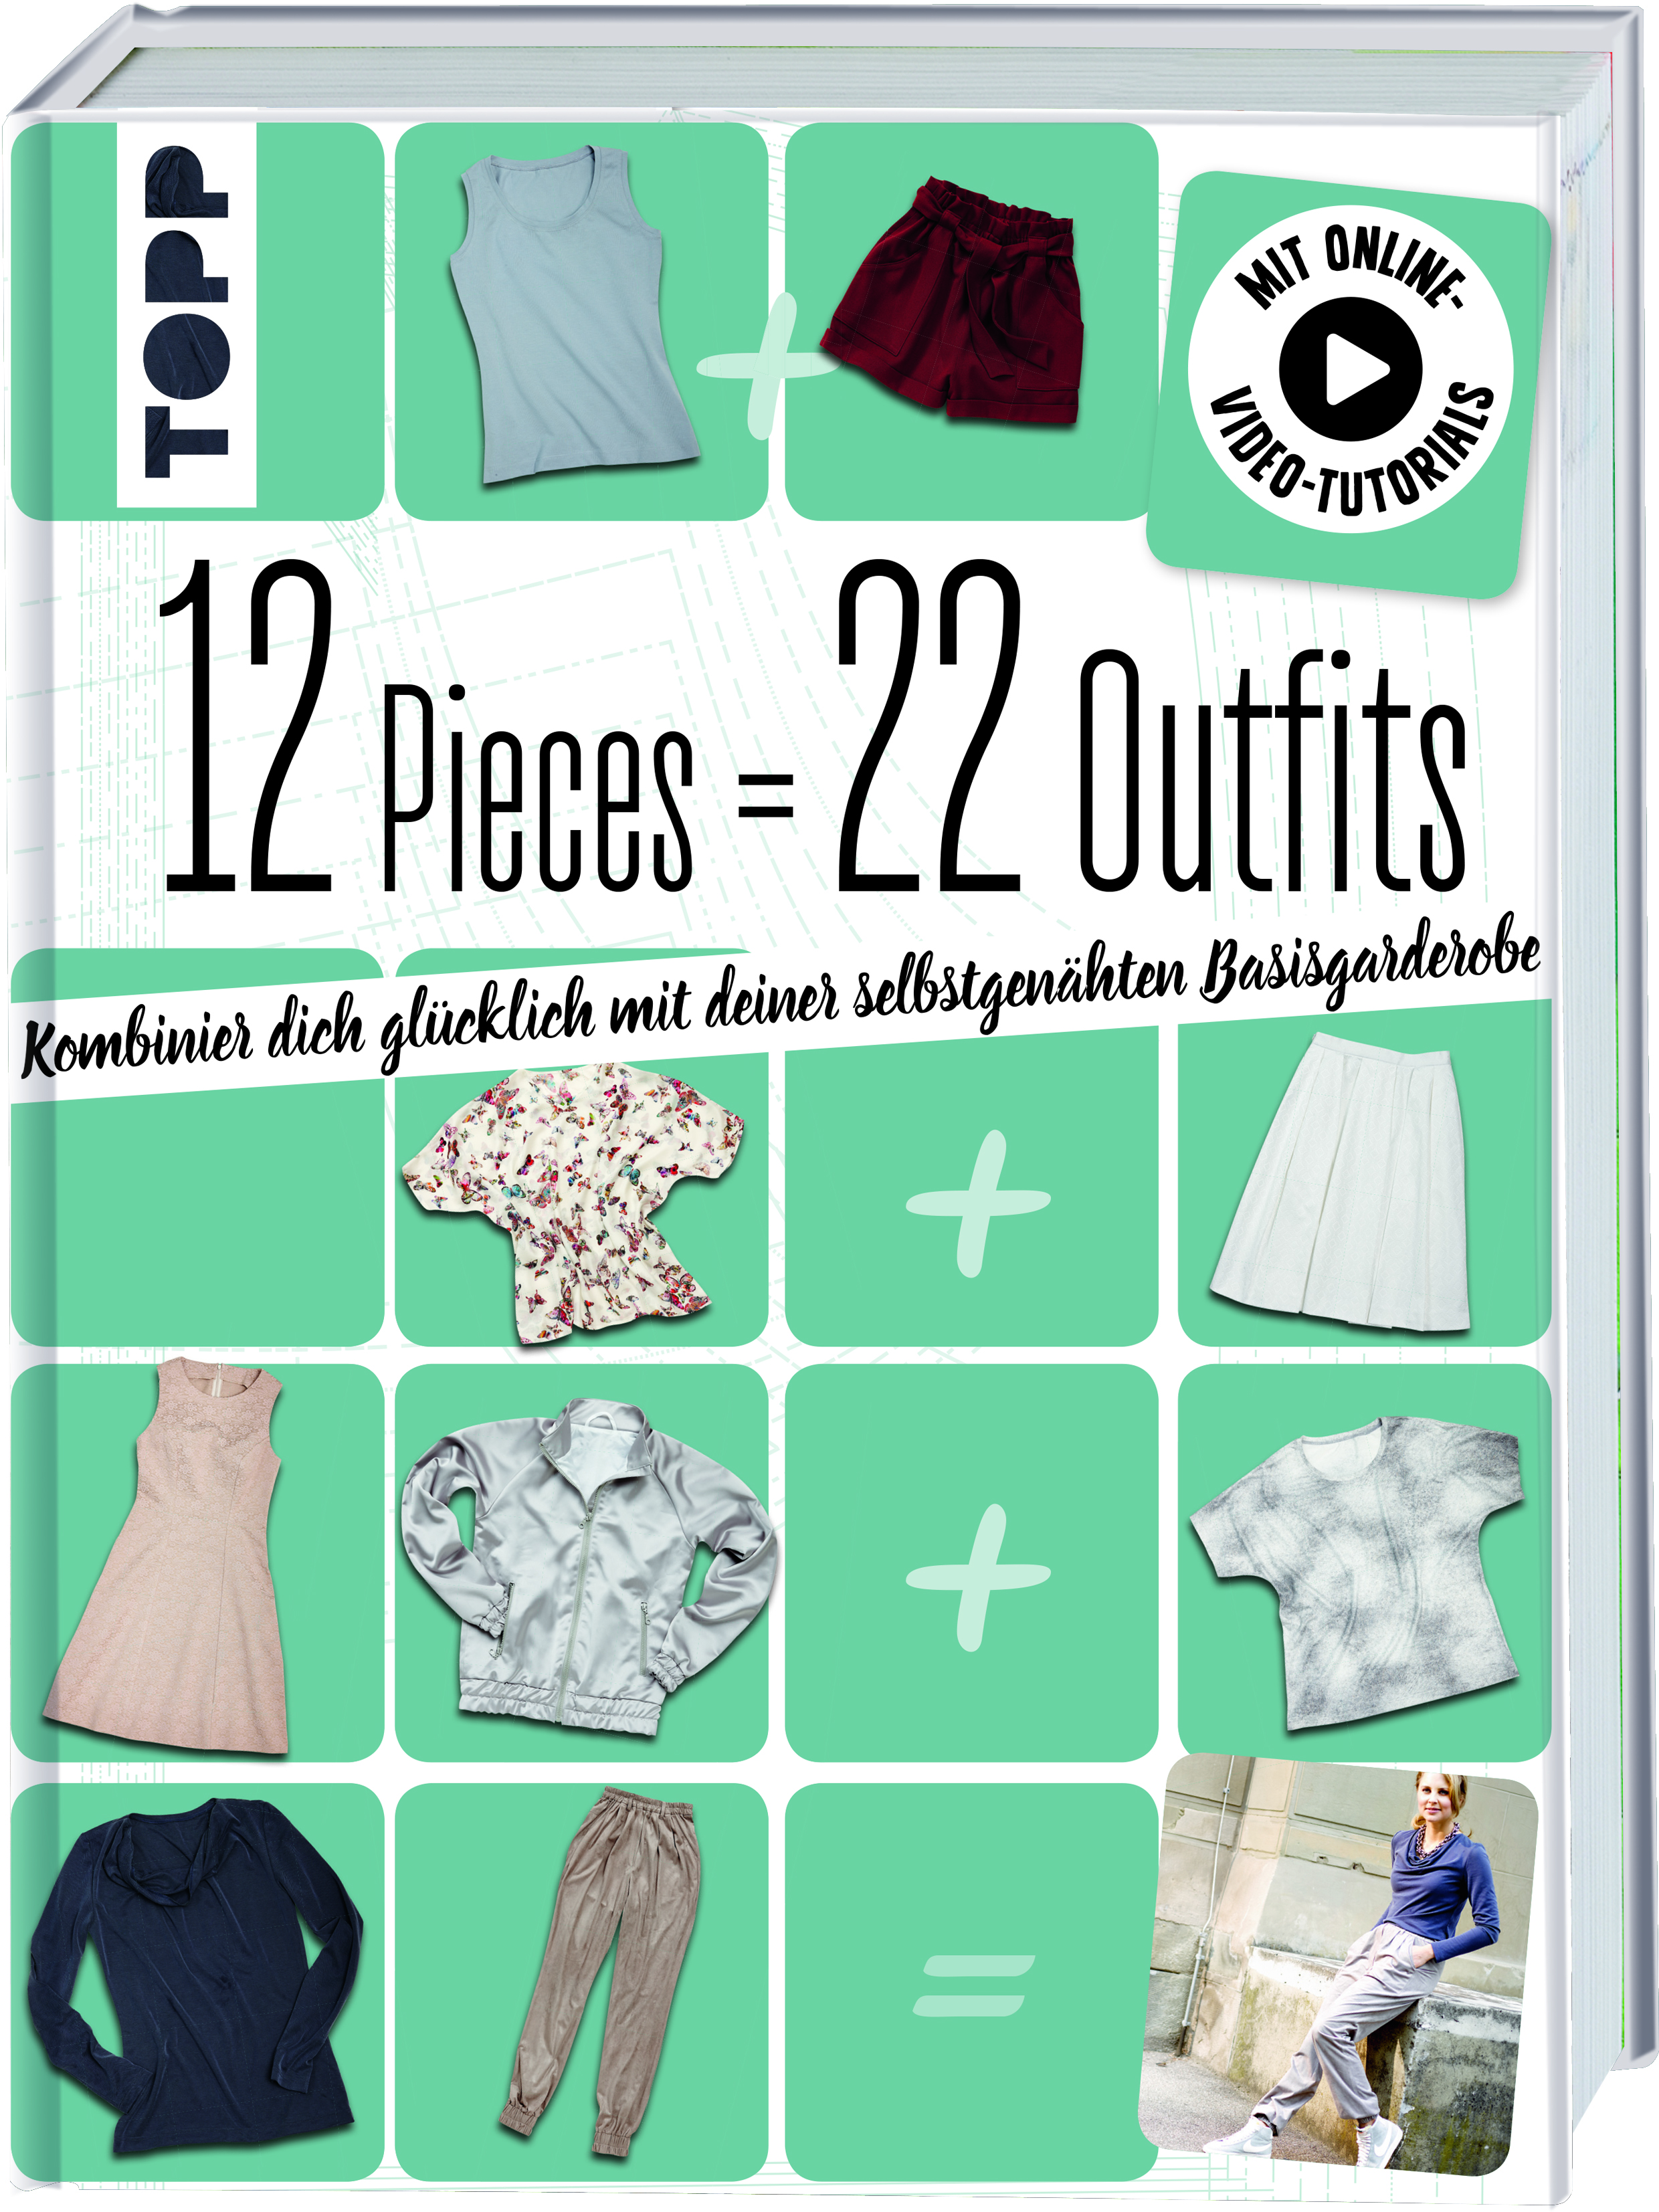 Topp 6474, 12 Pieces=22Outfits